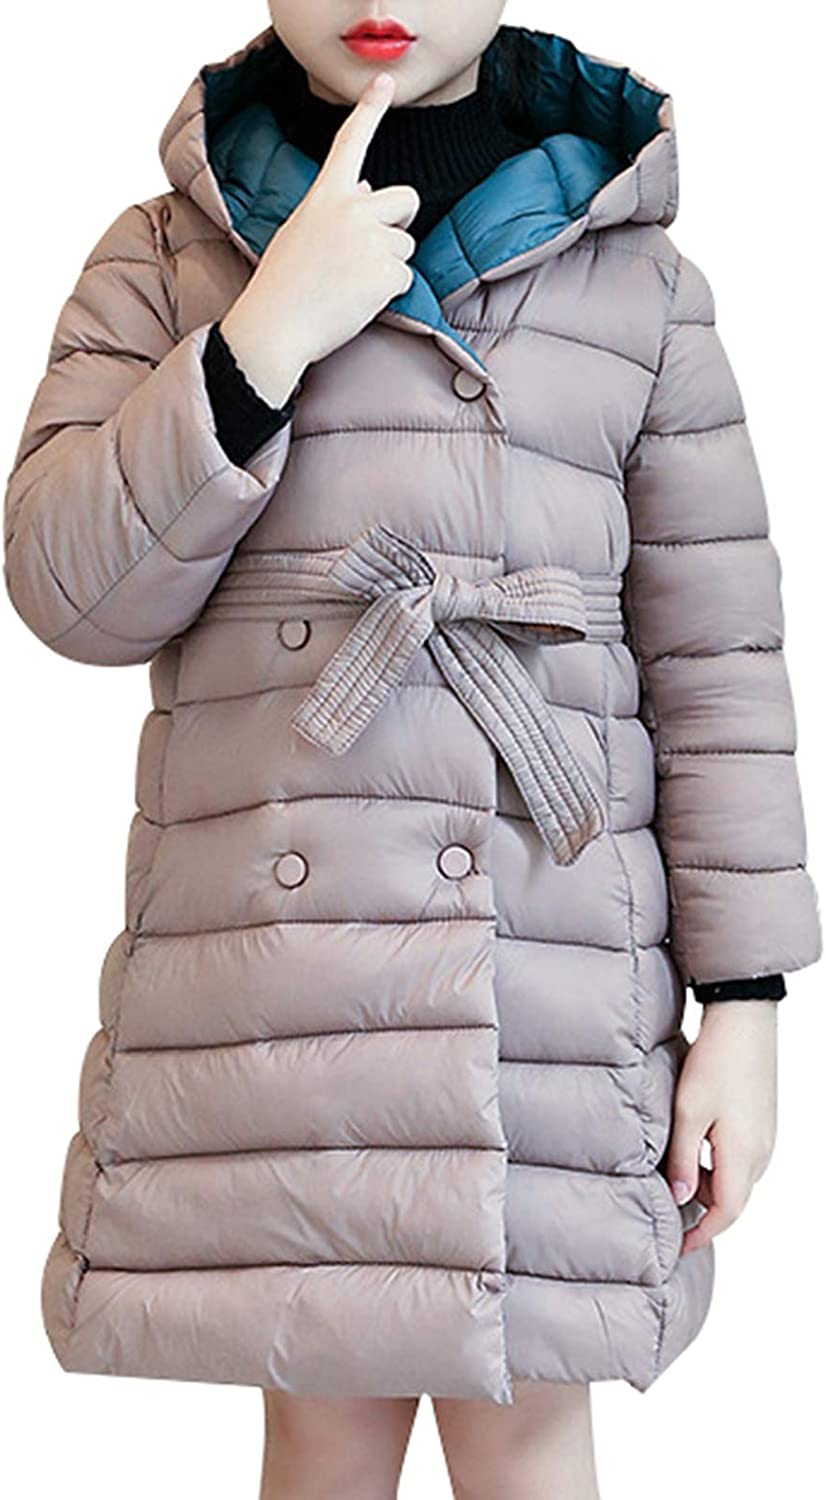 Beloved Little Girls Fashion Double Breasted Flower Floral Casual Hooded Puffer Down Jacket